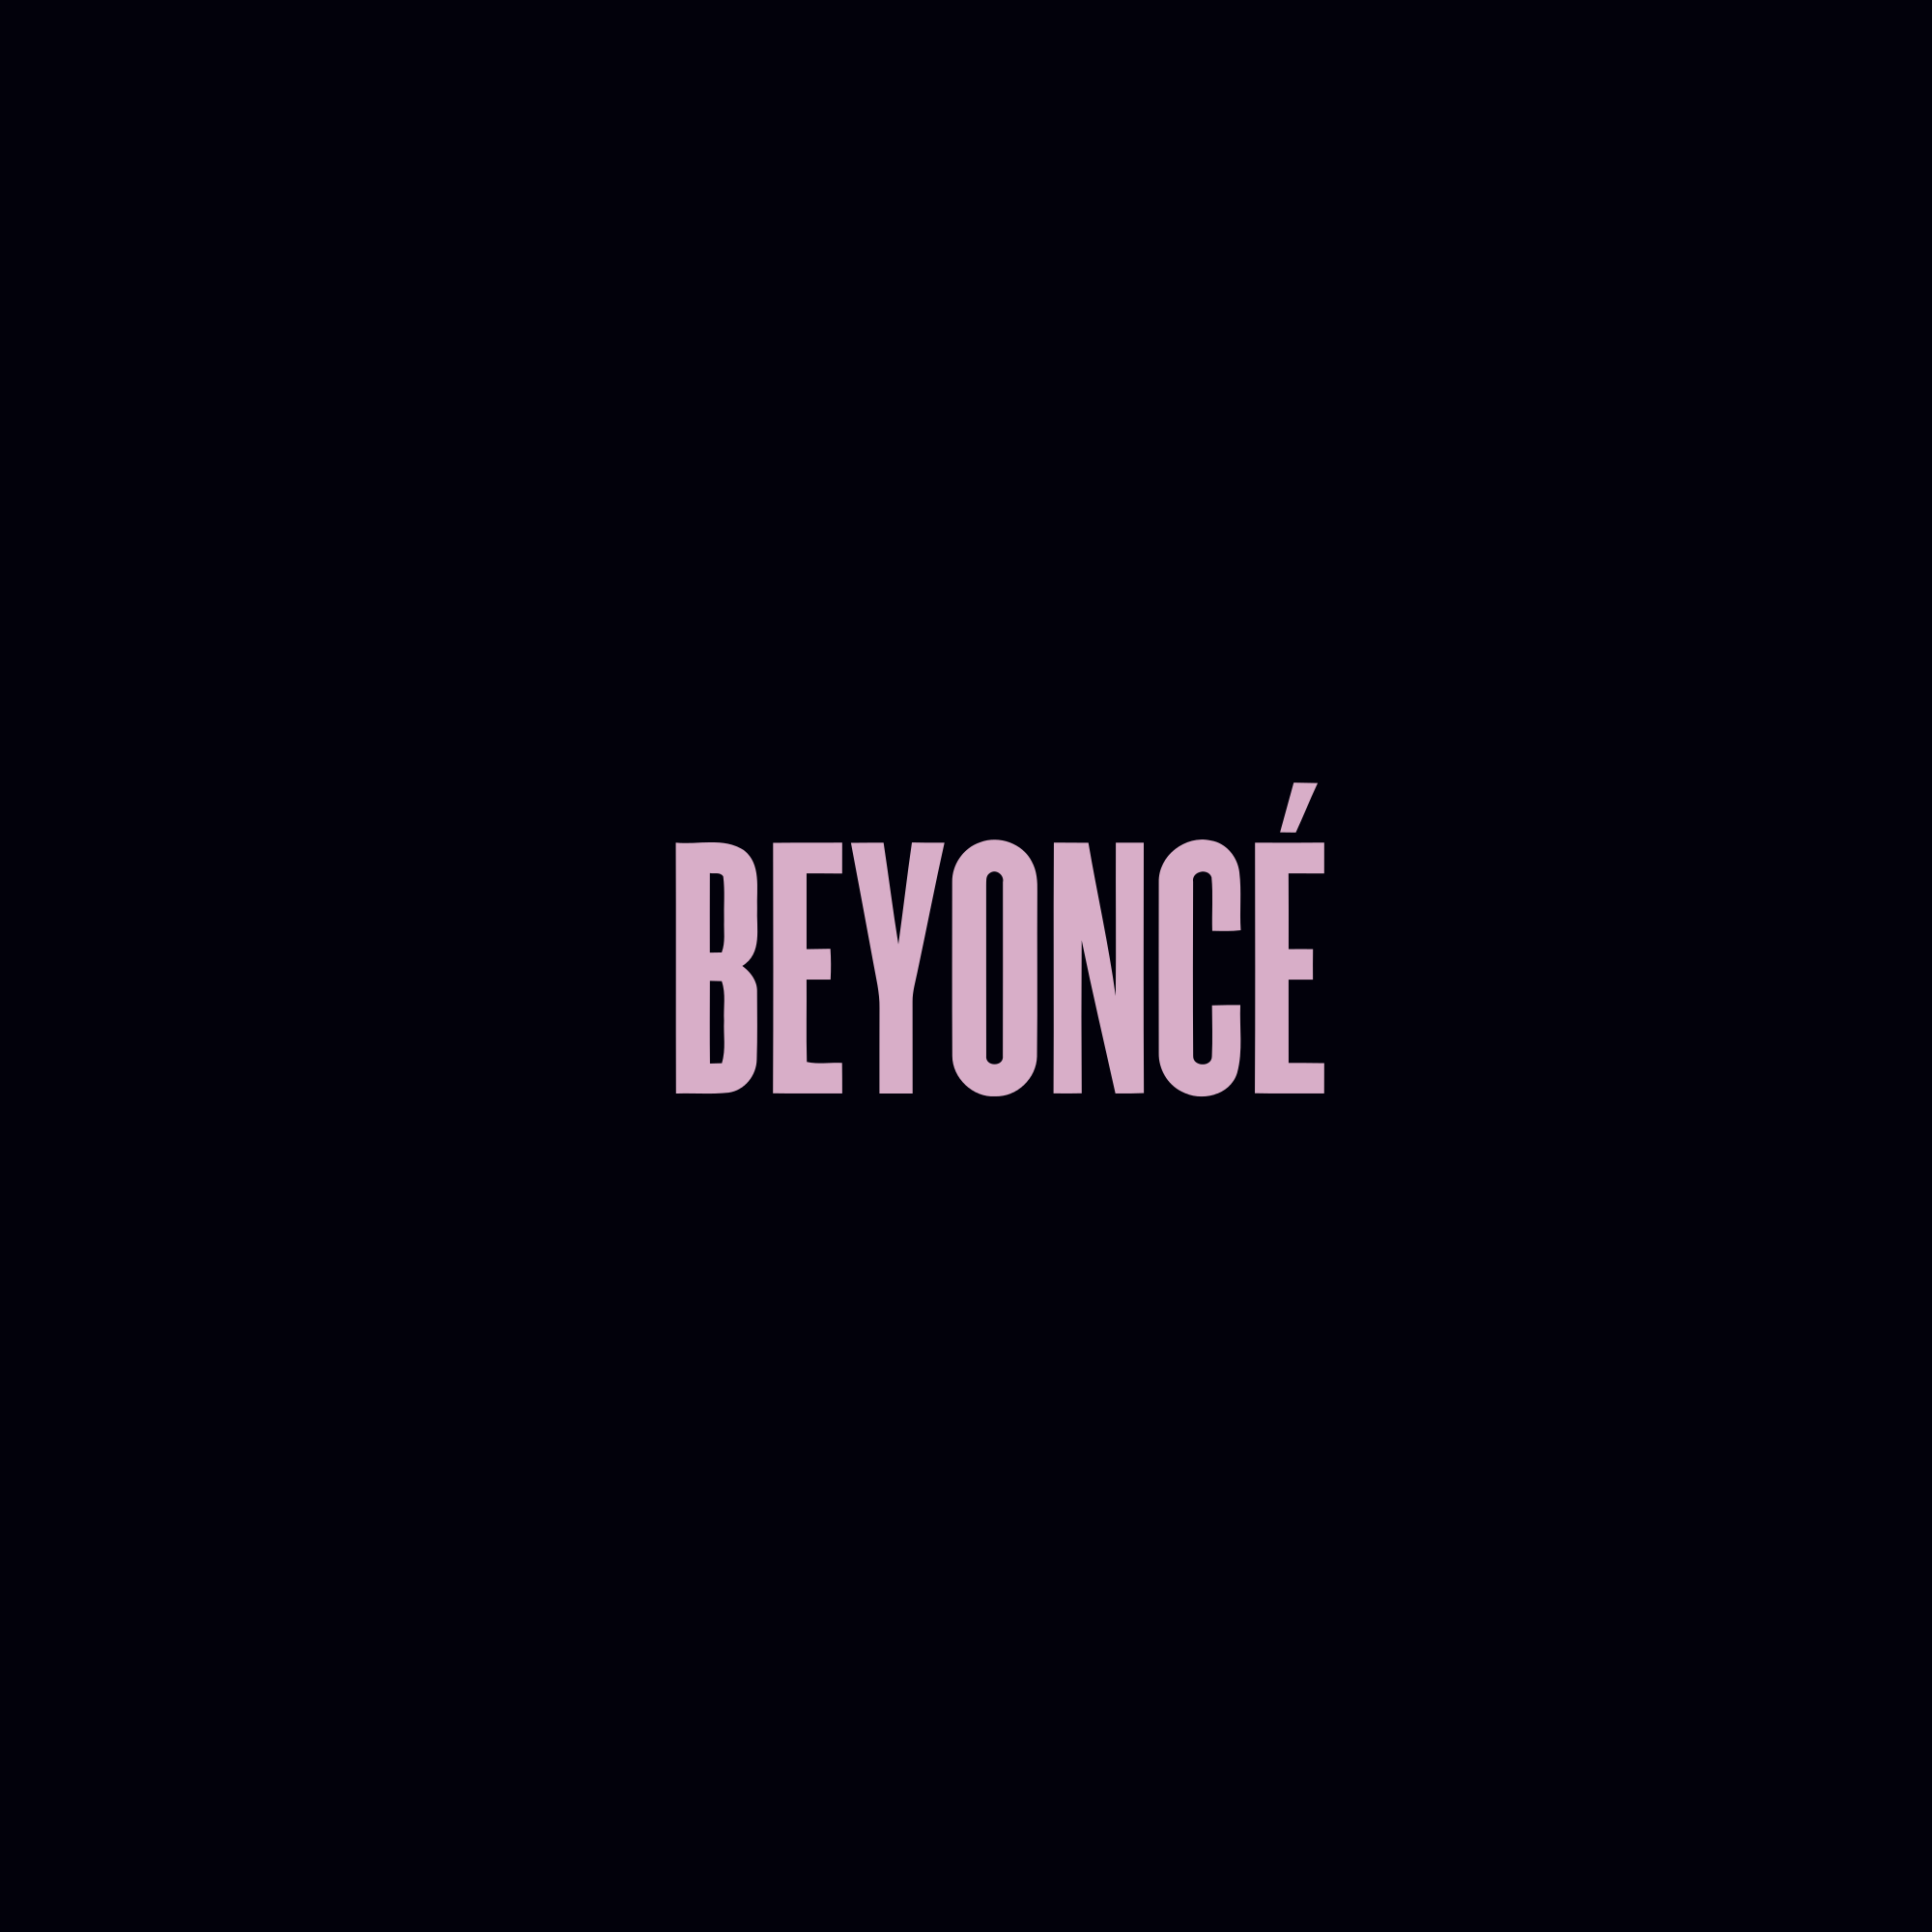 Beyonce's self-titled album is out now.